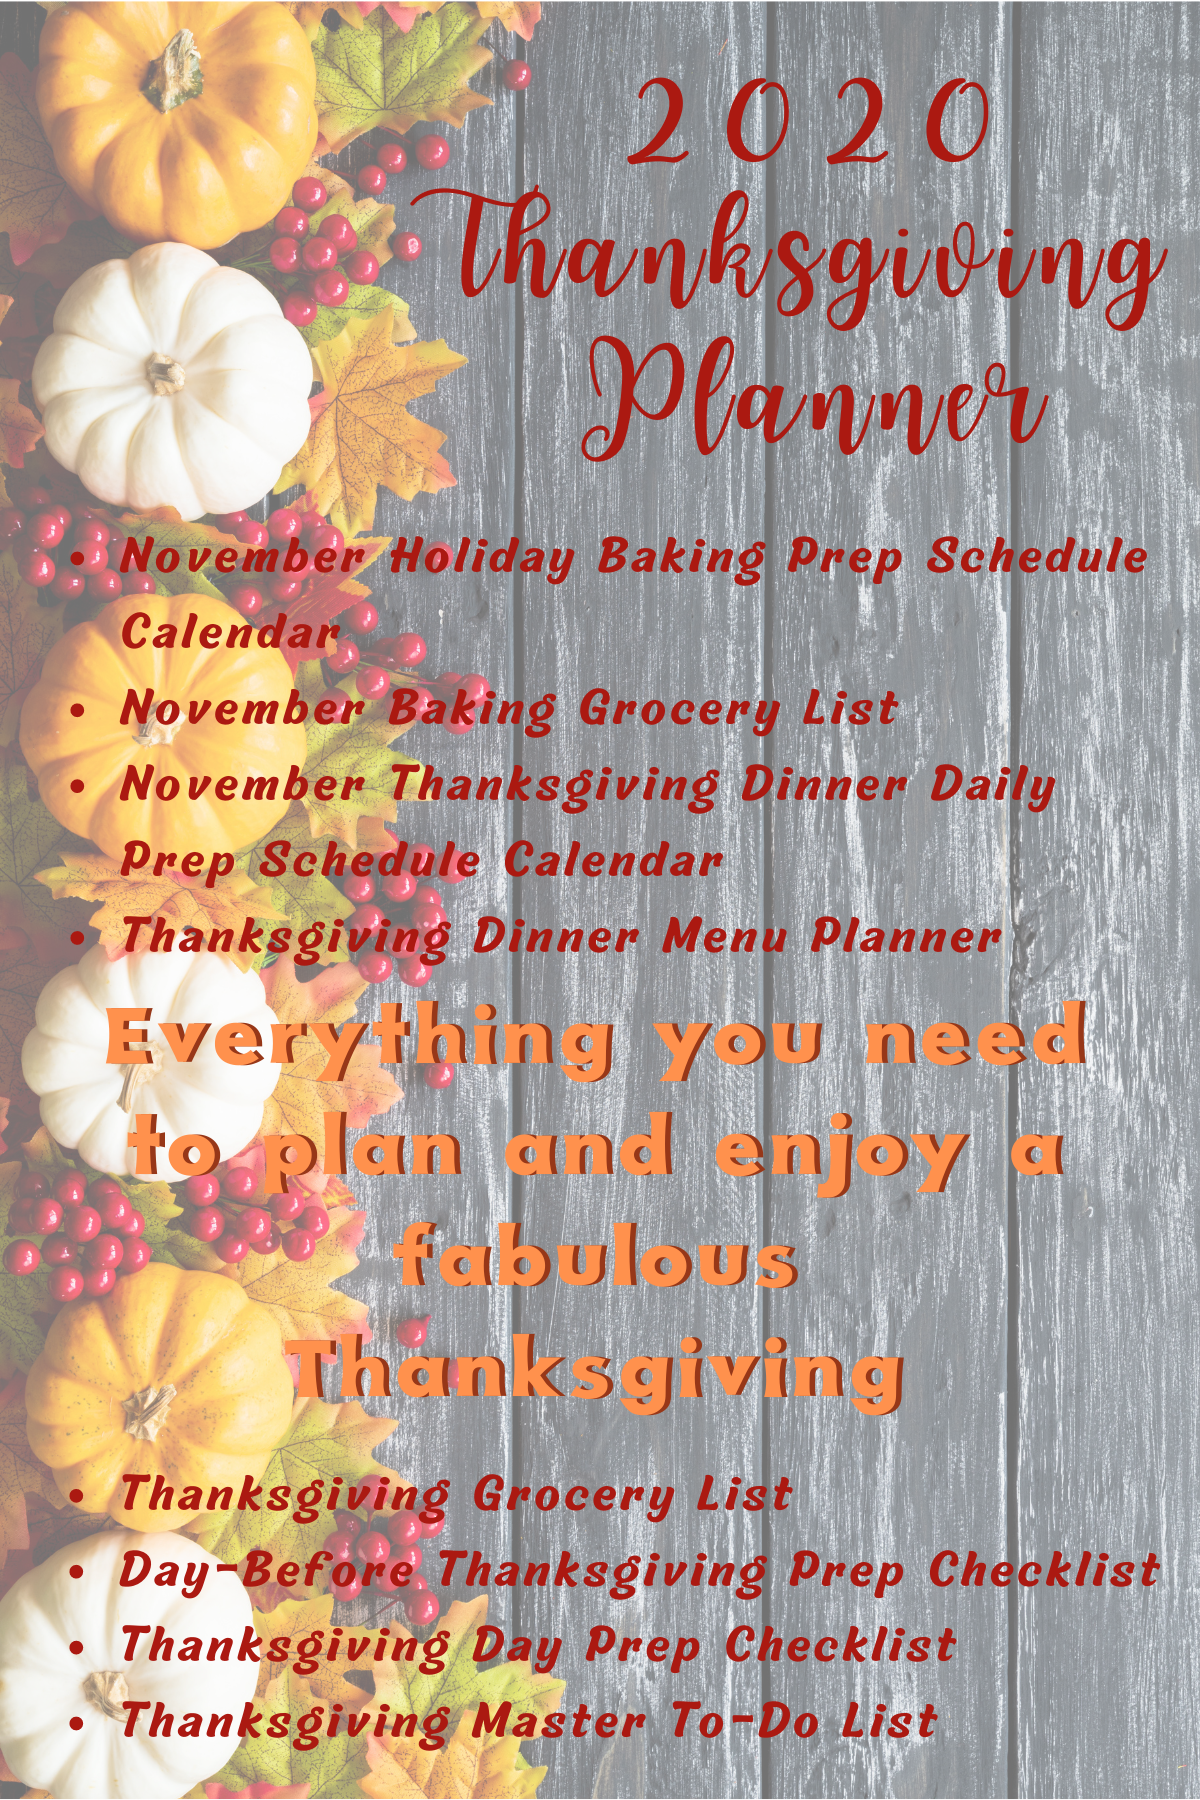 This Thanksgiving Start With A Plan In 2020 Thanksgiving Planning Thanksgiving Planner Thanksgiving Prep